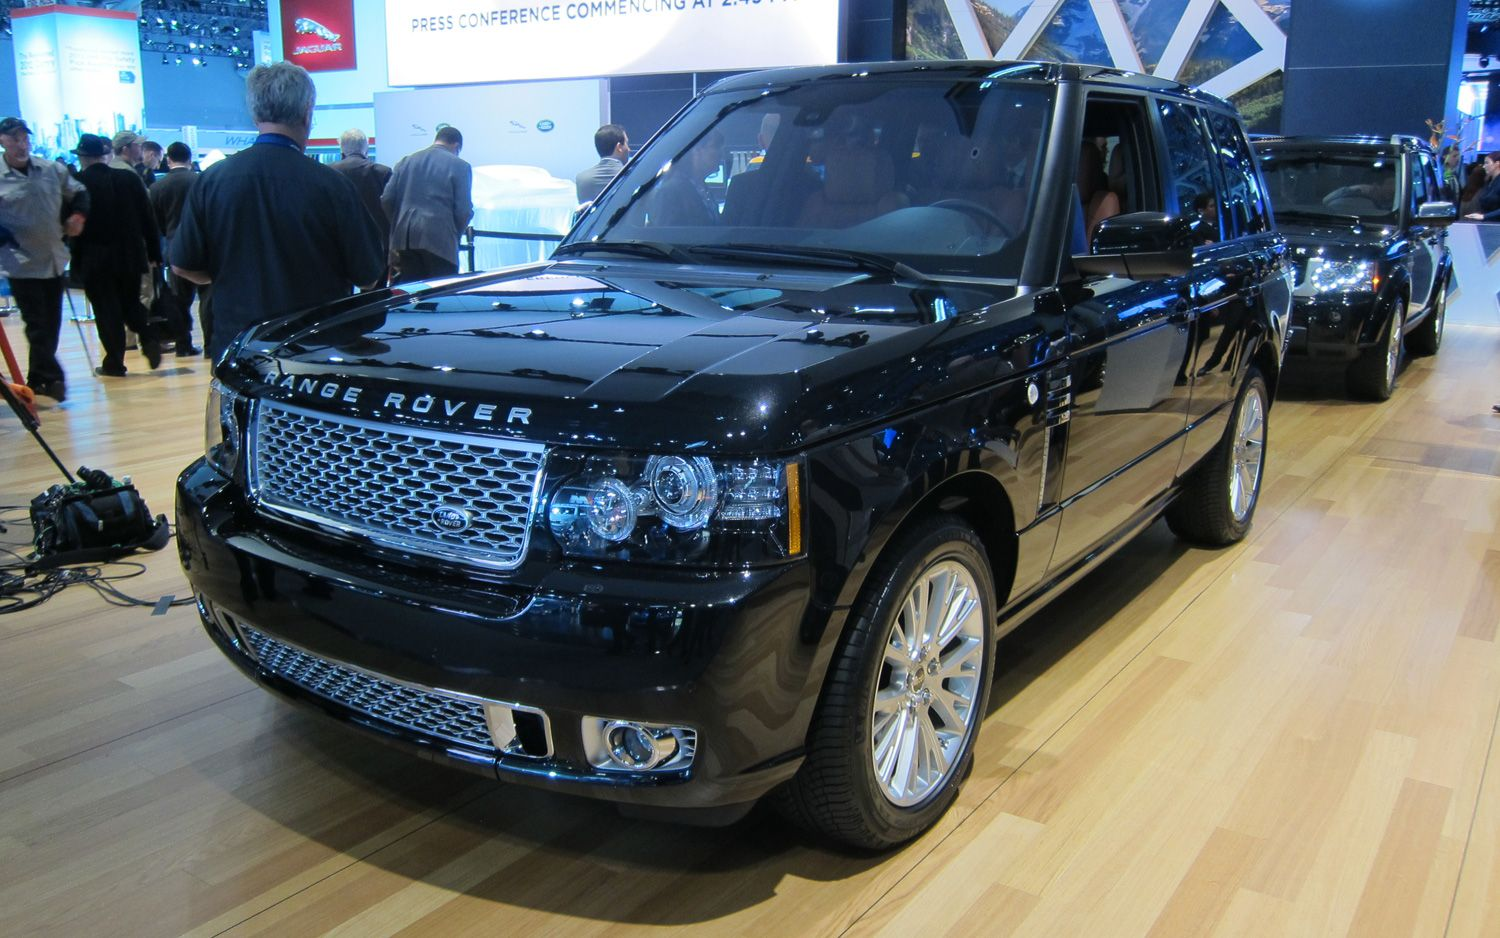 2013 Supercharged Range Rover Land rover, Range rover